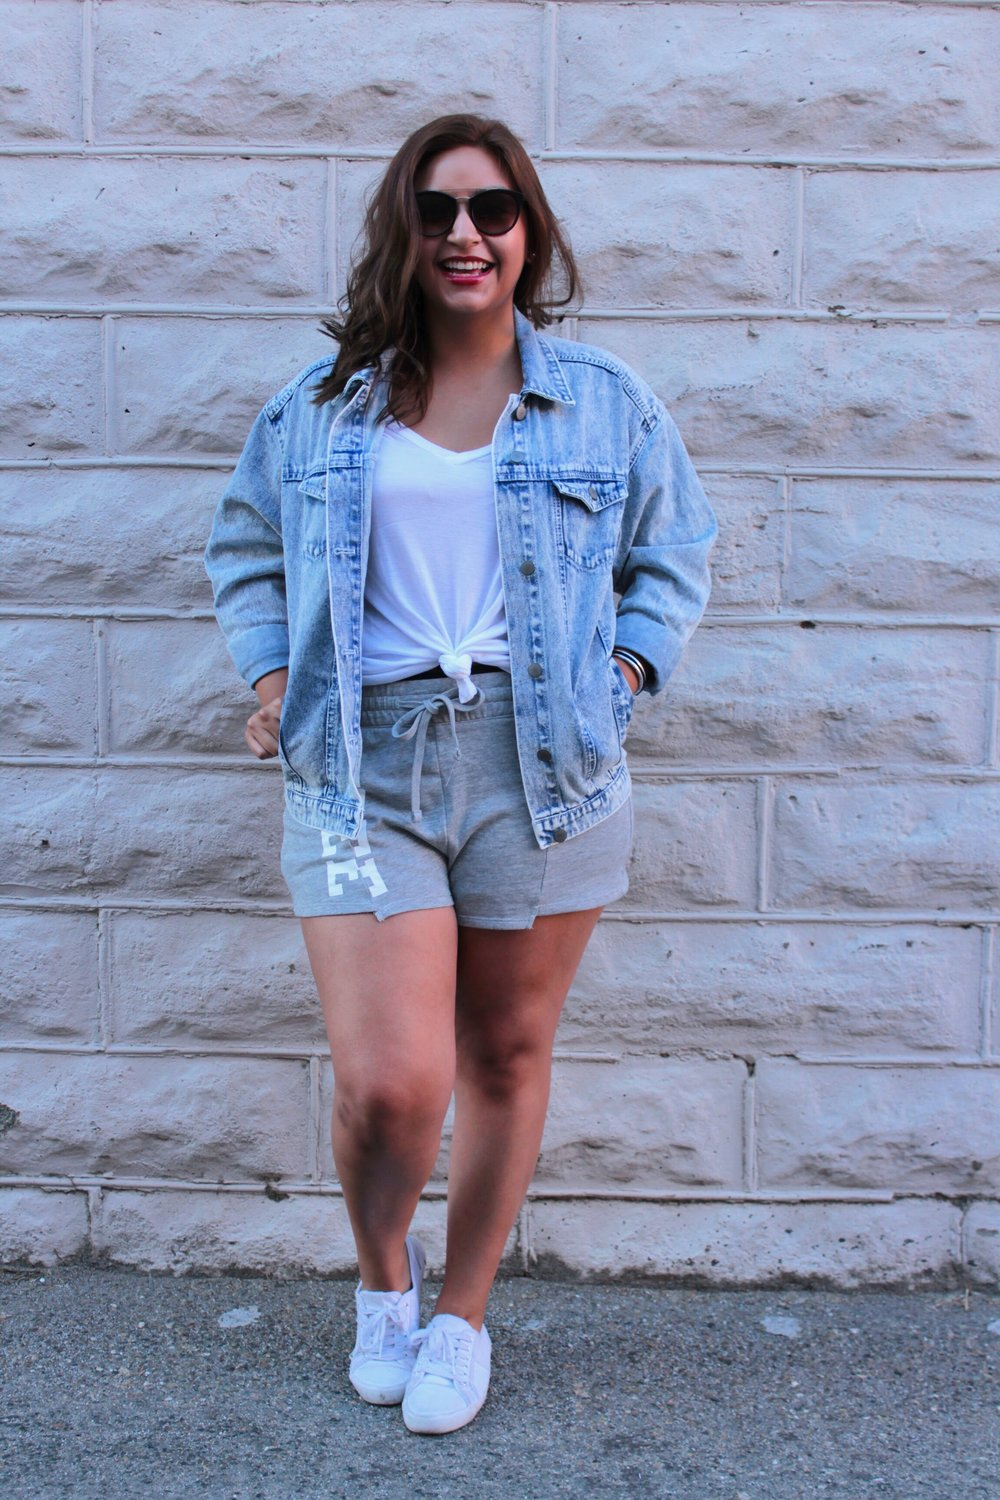 Mixing Denim and Sweats for a Streetstyle Fashion look.